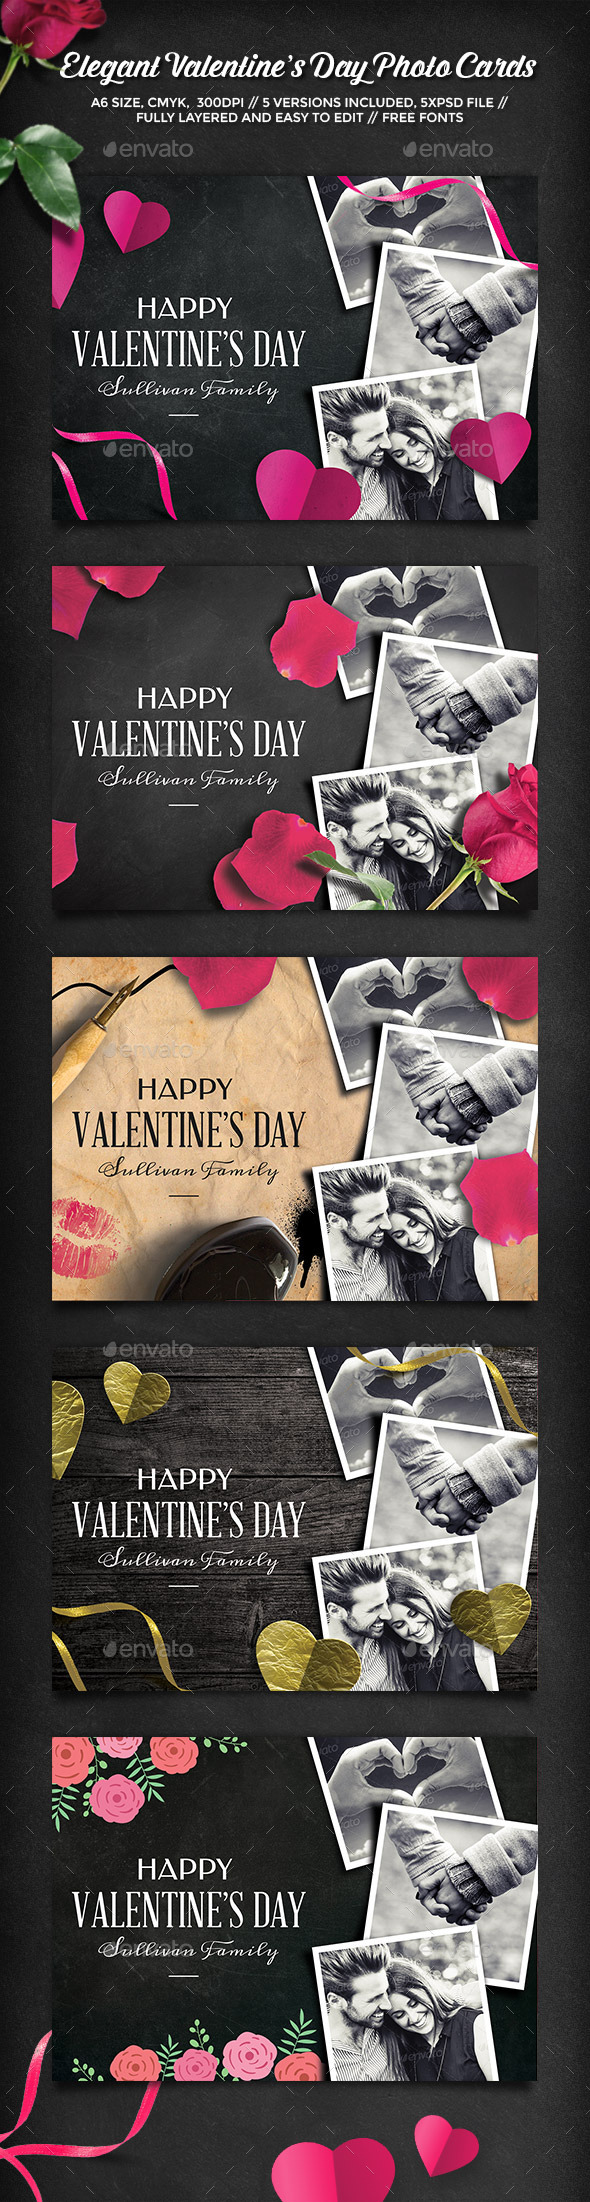 Elegant Valentine's Day Photo Cards - Greeting Cards Cards & Invites